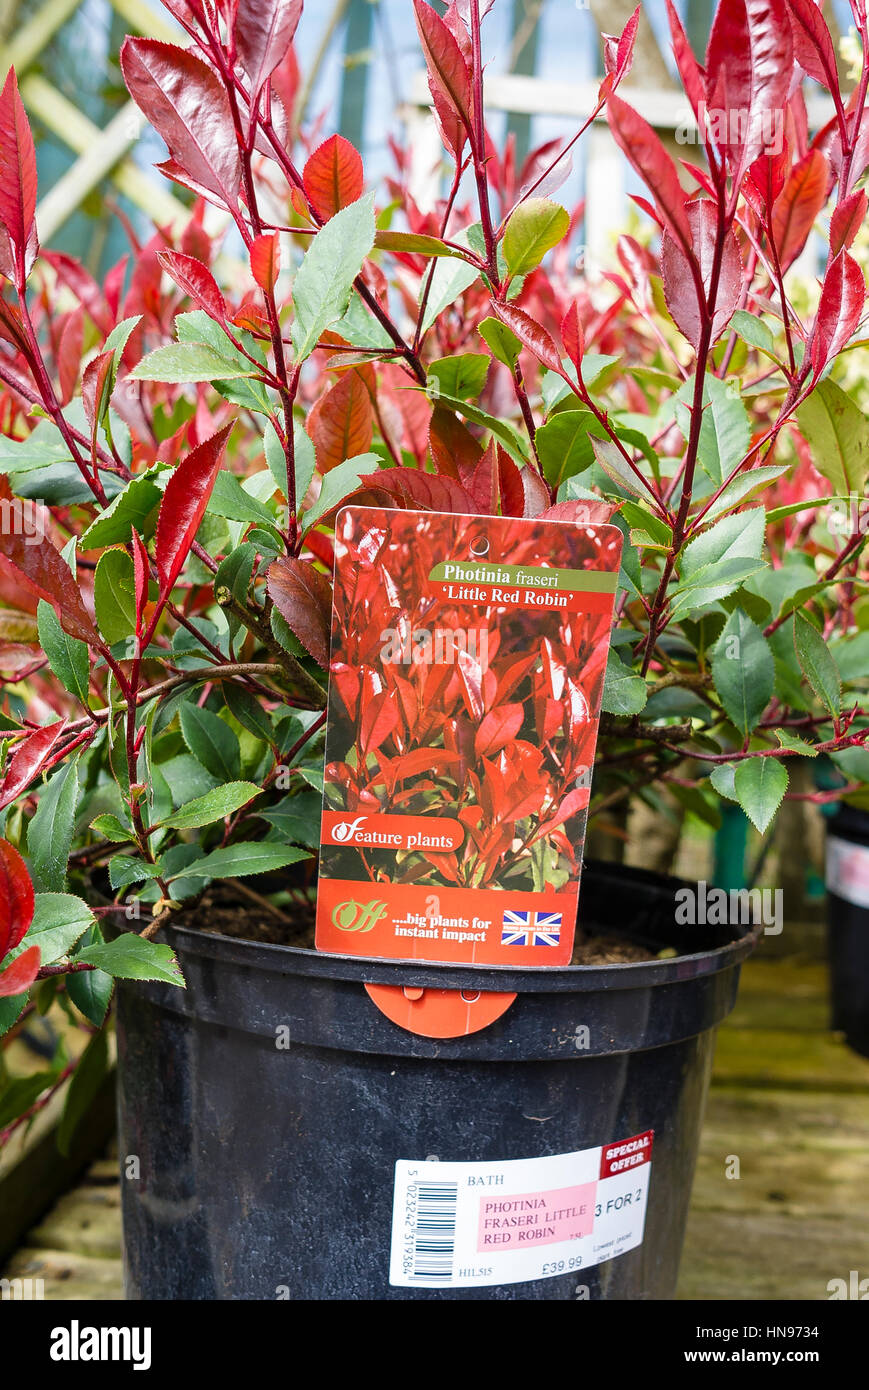 Photinia x fraseri Little Red Robin in a 7.5L pot for sale in a garden centre - Stock Image